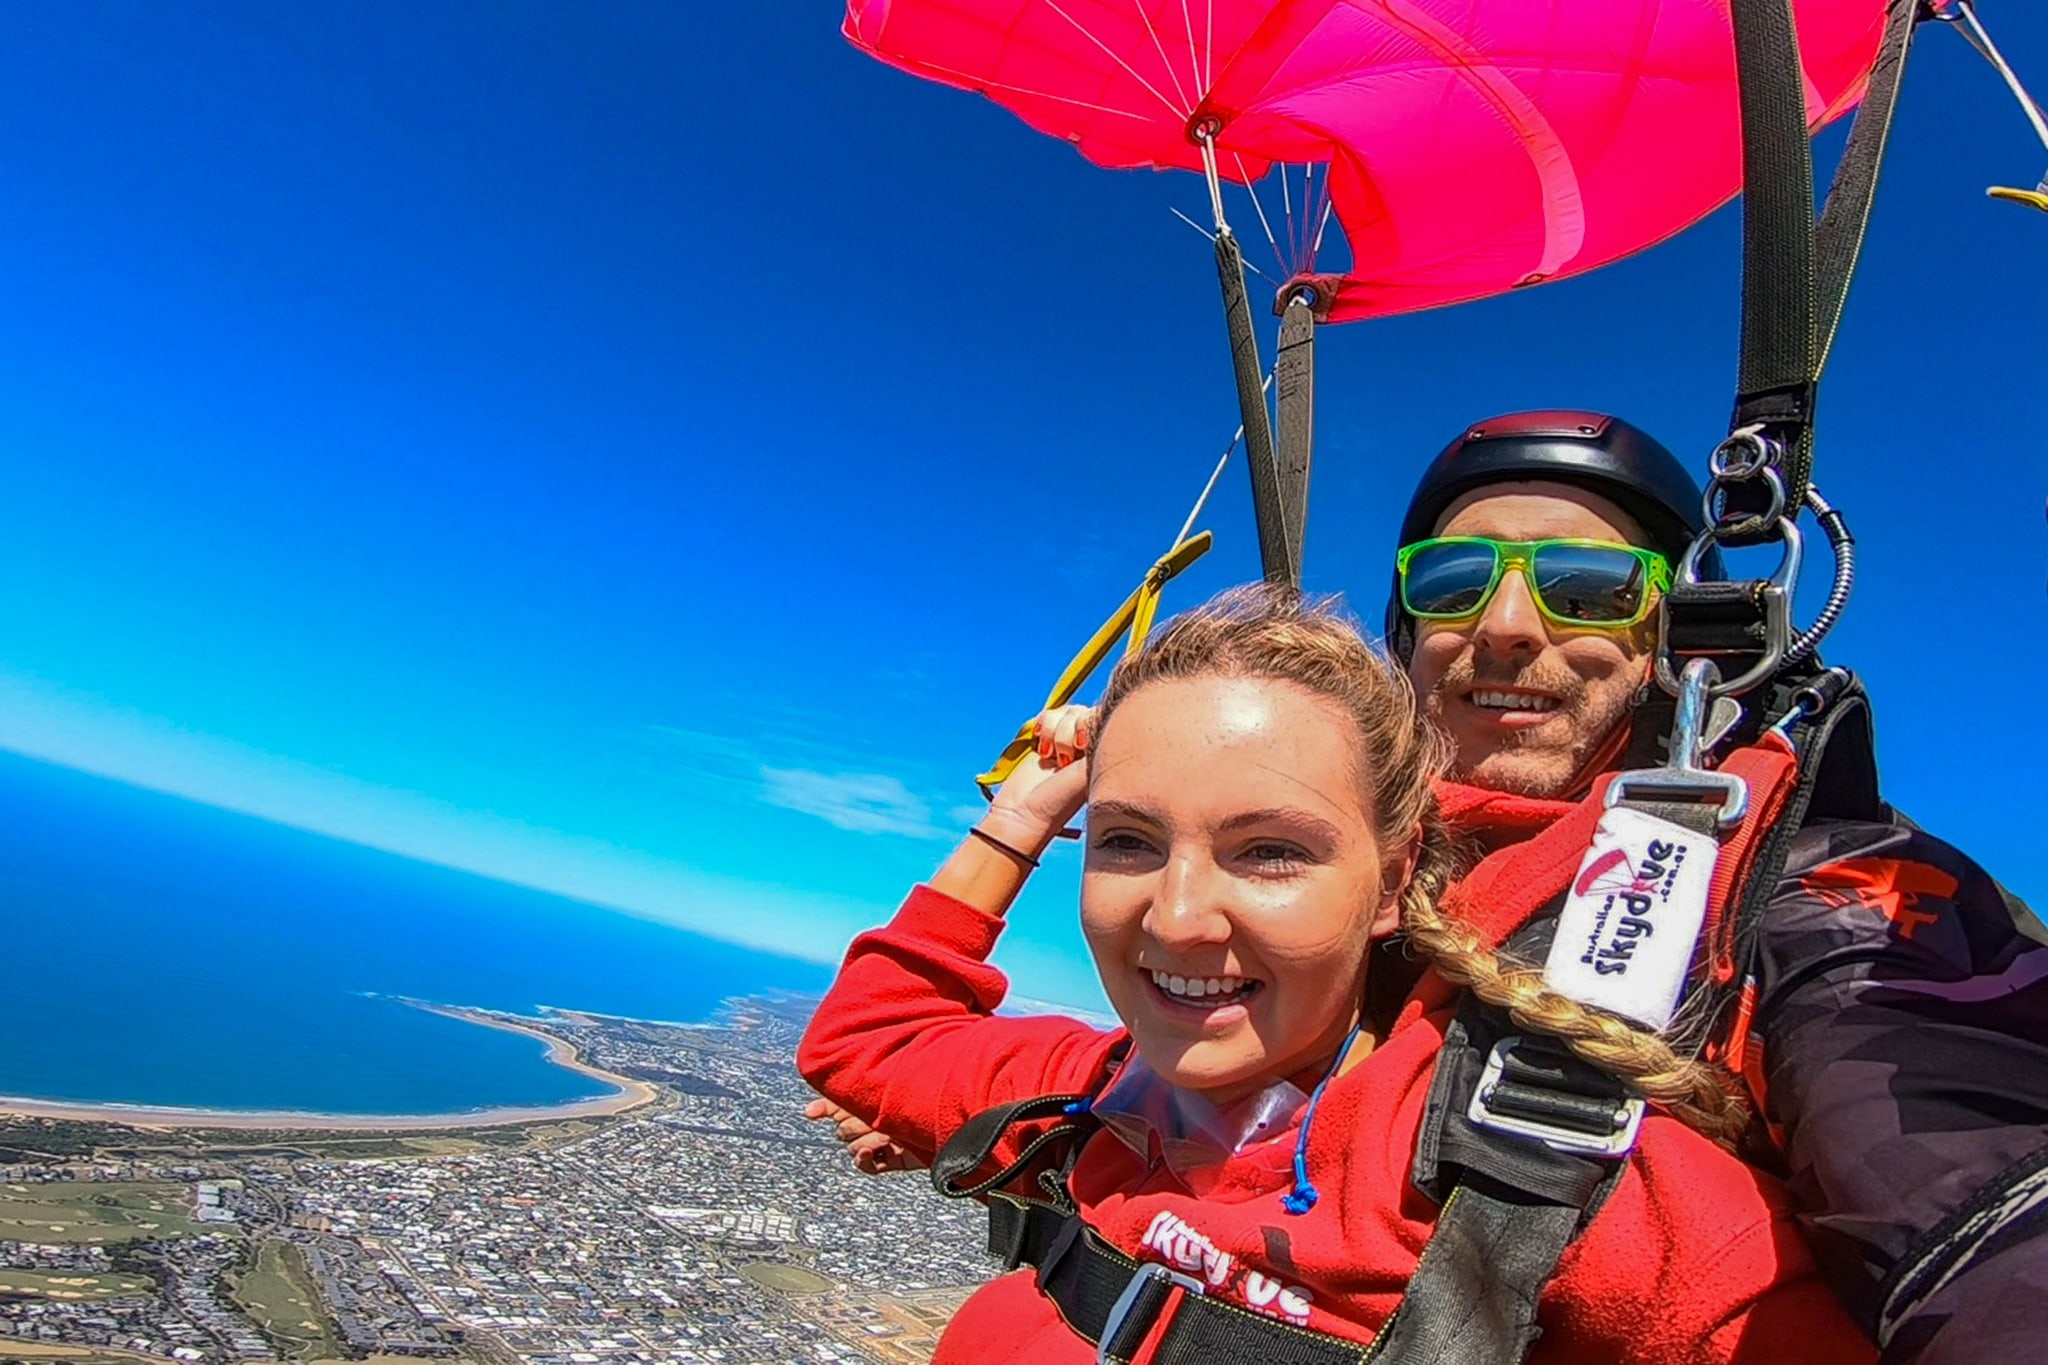 Skydiving Great Ocean Road (Torquay) - Tandem Skydive up to 15,000ft WEEKDAY SPECIAL